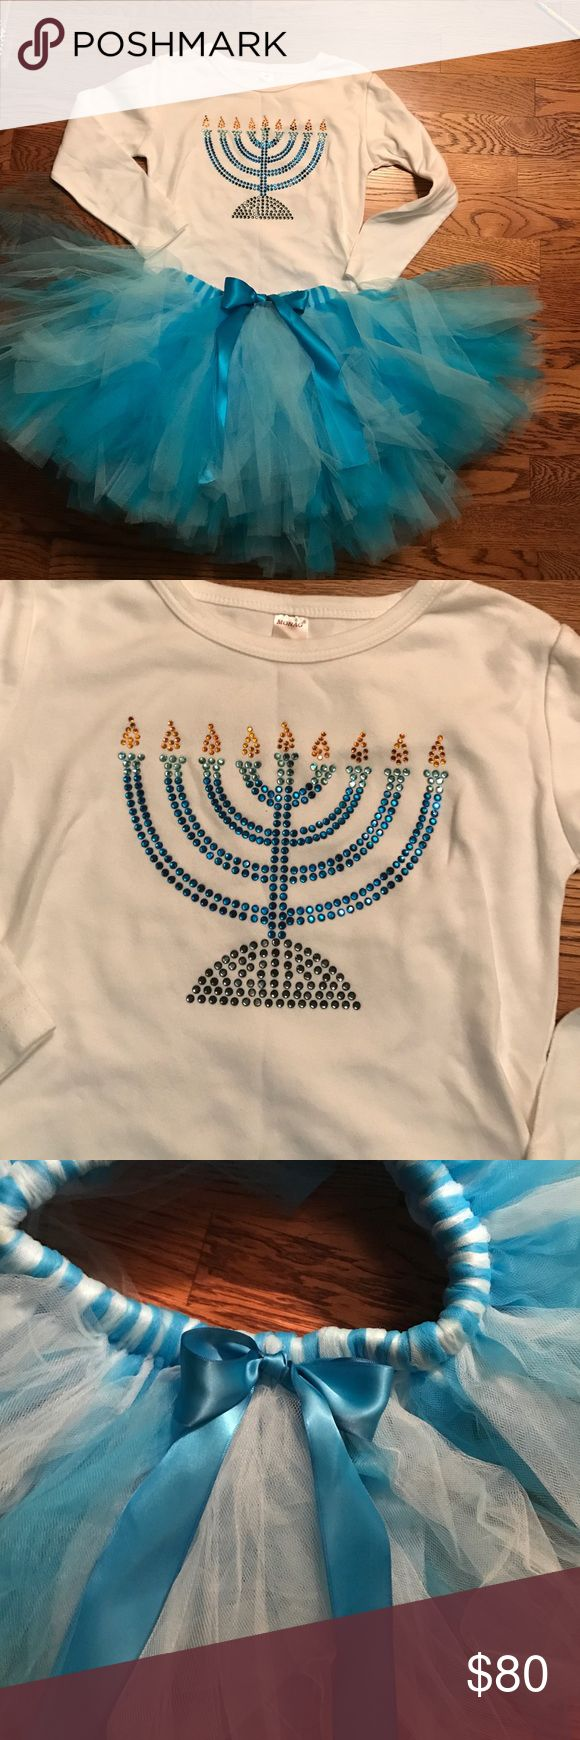 Selling this Hanukkah Dress, Tutu, Bling Outfit-never worn on Poshmark! My username is: dominique13. #shopmycloset #poshmark #fashion #shopping #style #forsale #Other